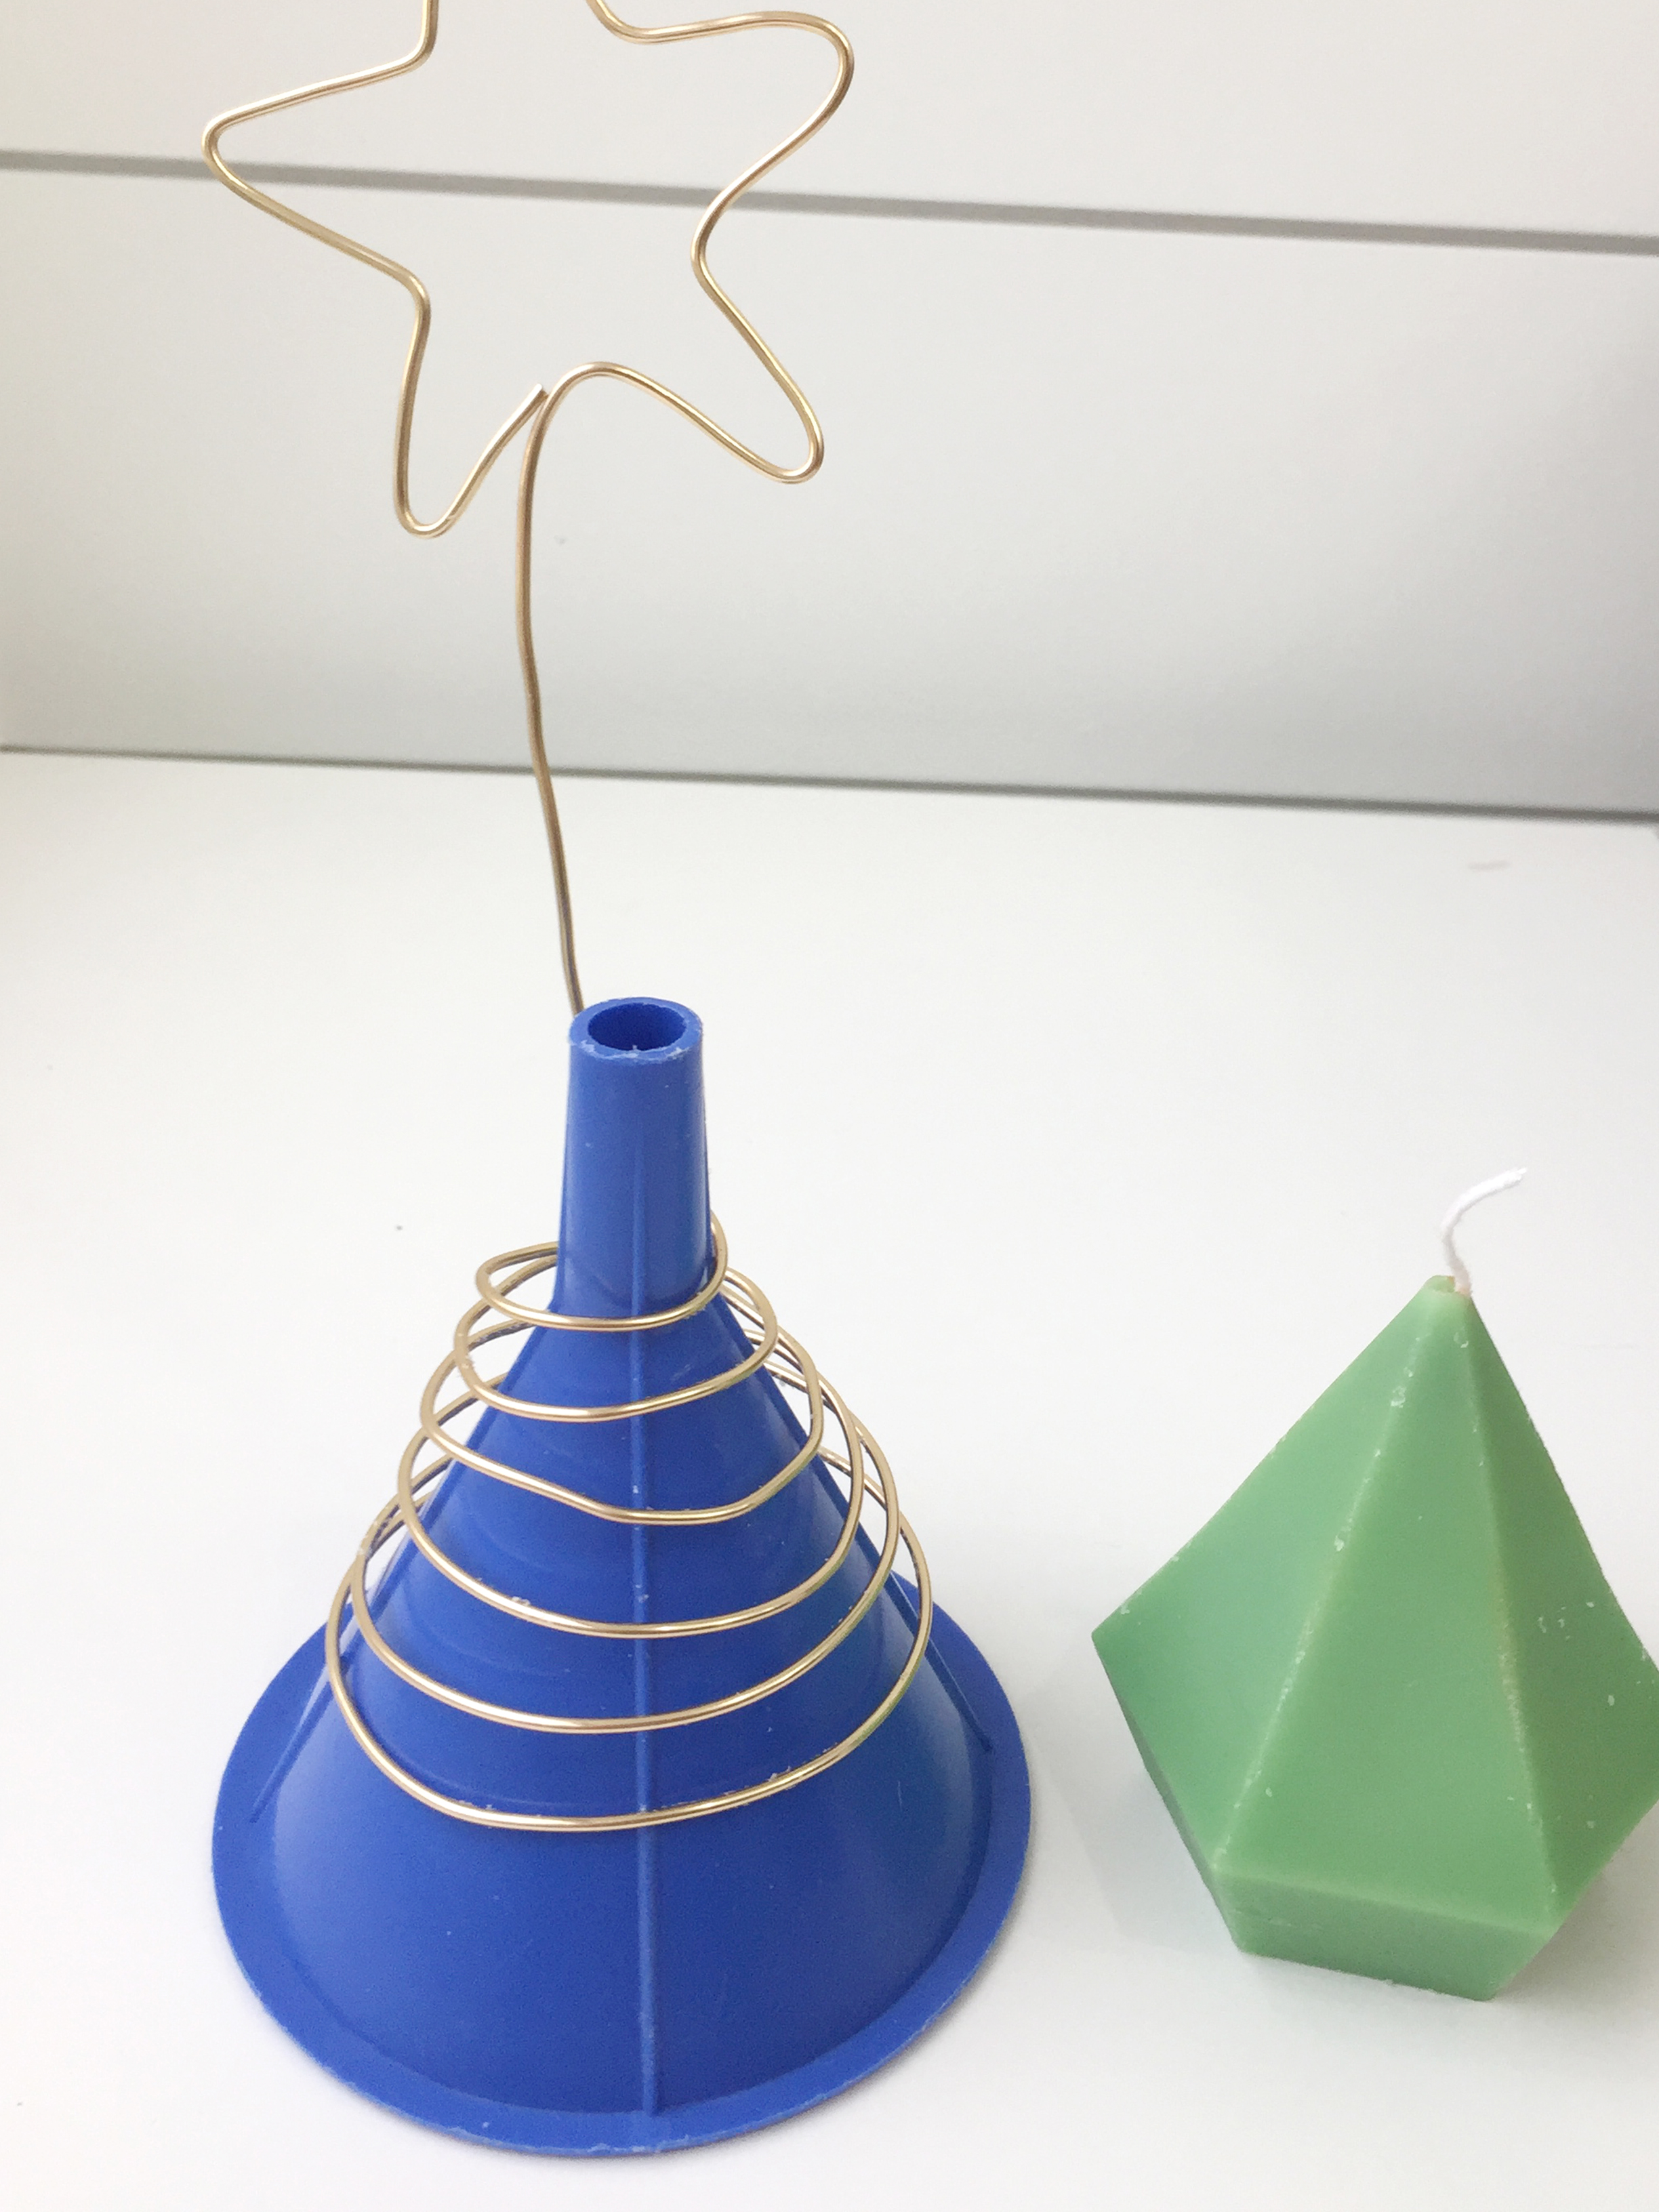 step out 2_wrap wire around cone shape